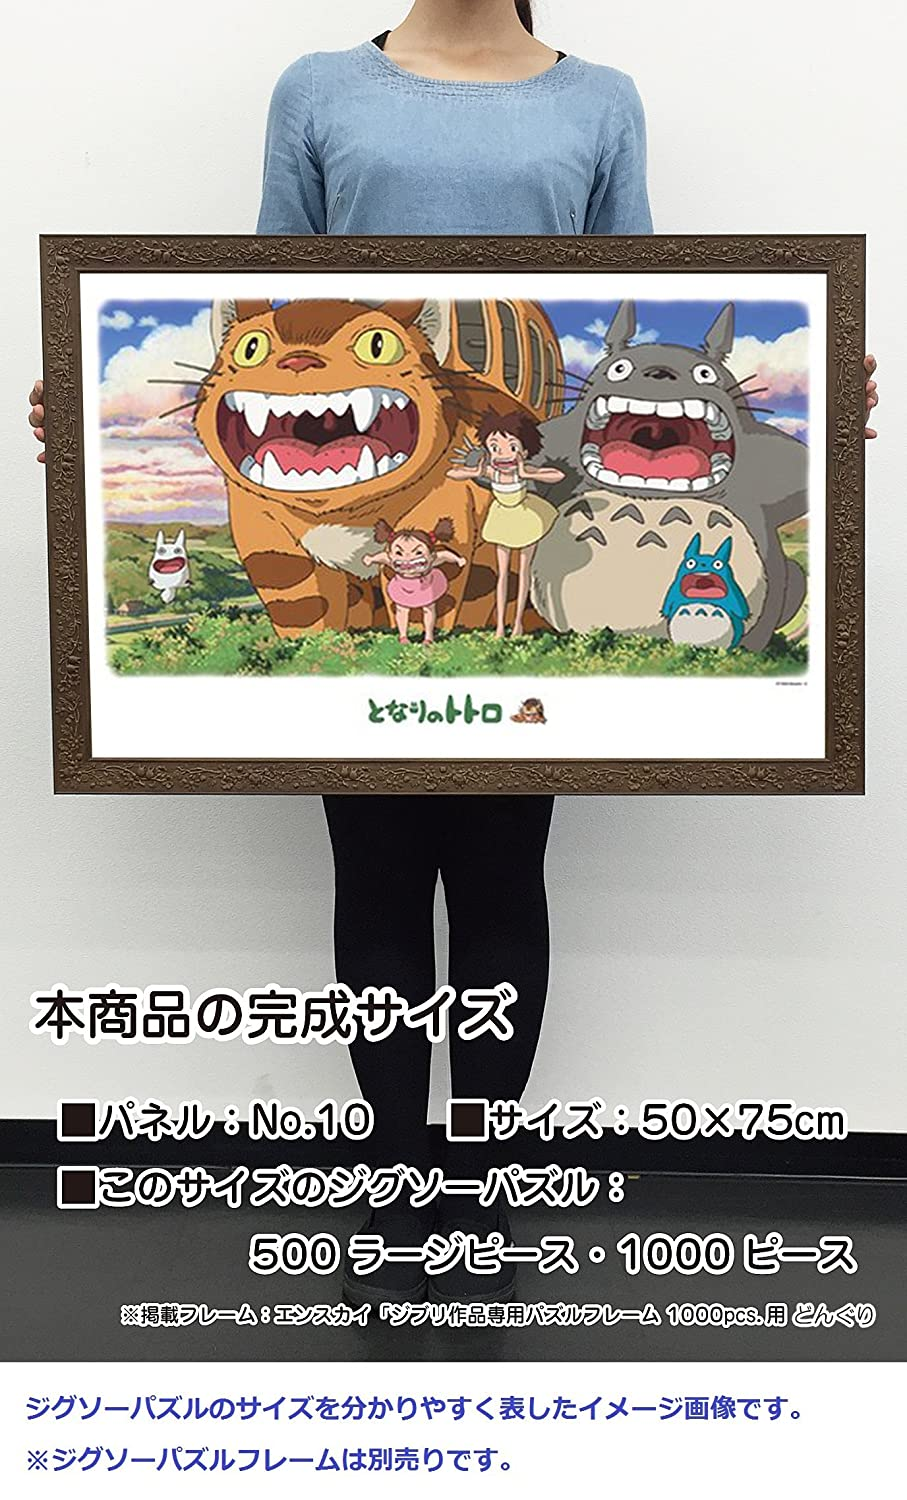 jigsaw puzzle - scene from the movie My Neighbor Totoro